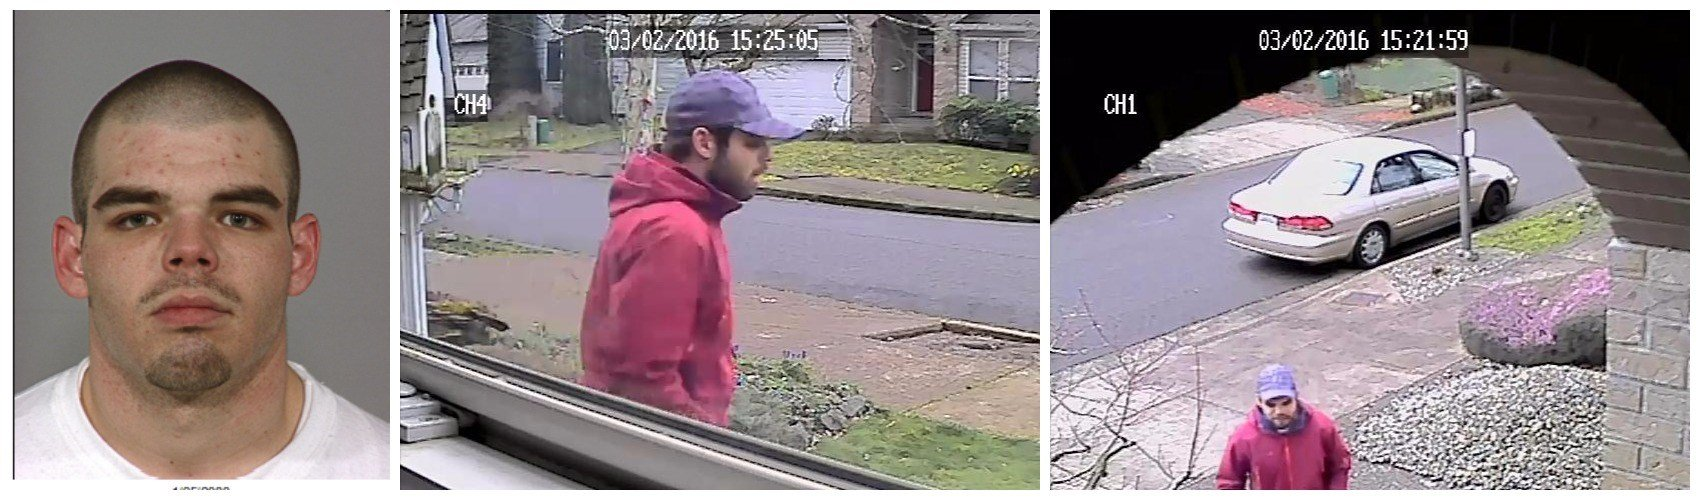 Images of Hentz from the March 4 burglary, provided by Portland Police.